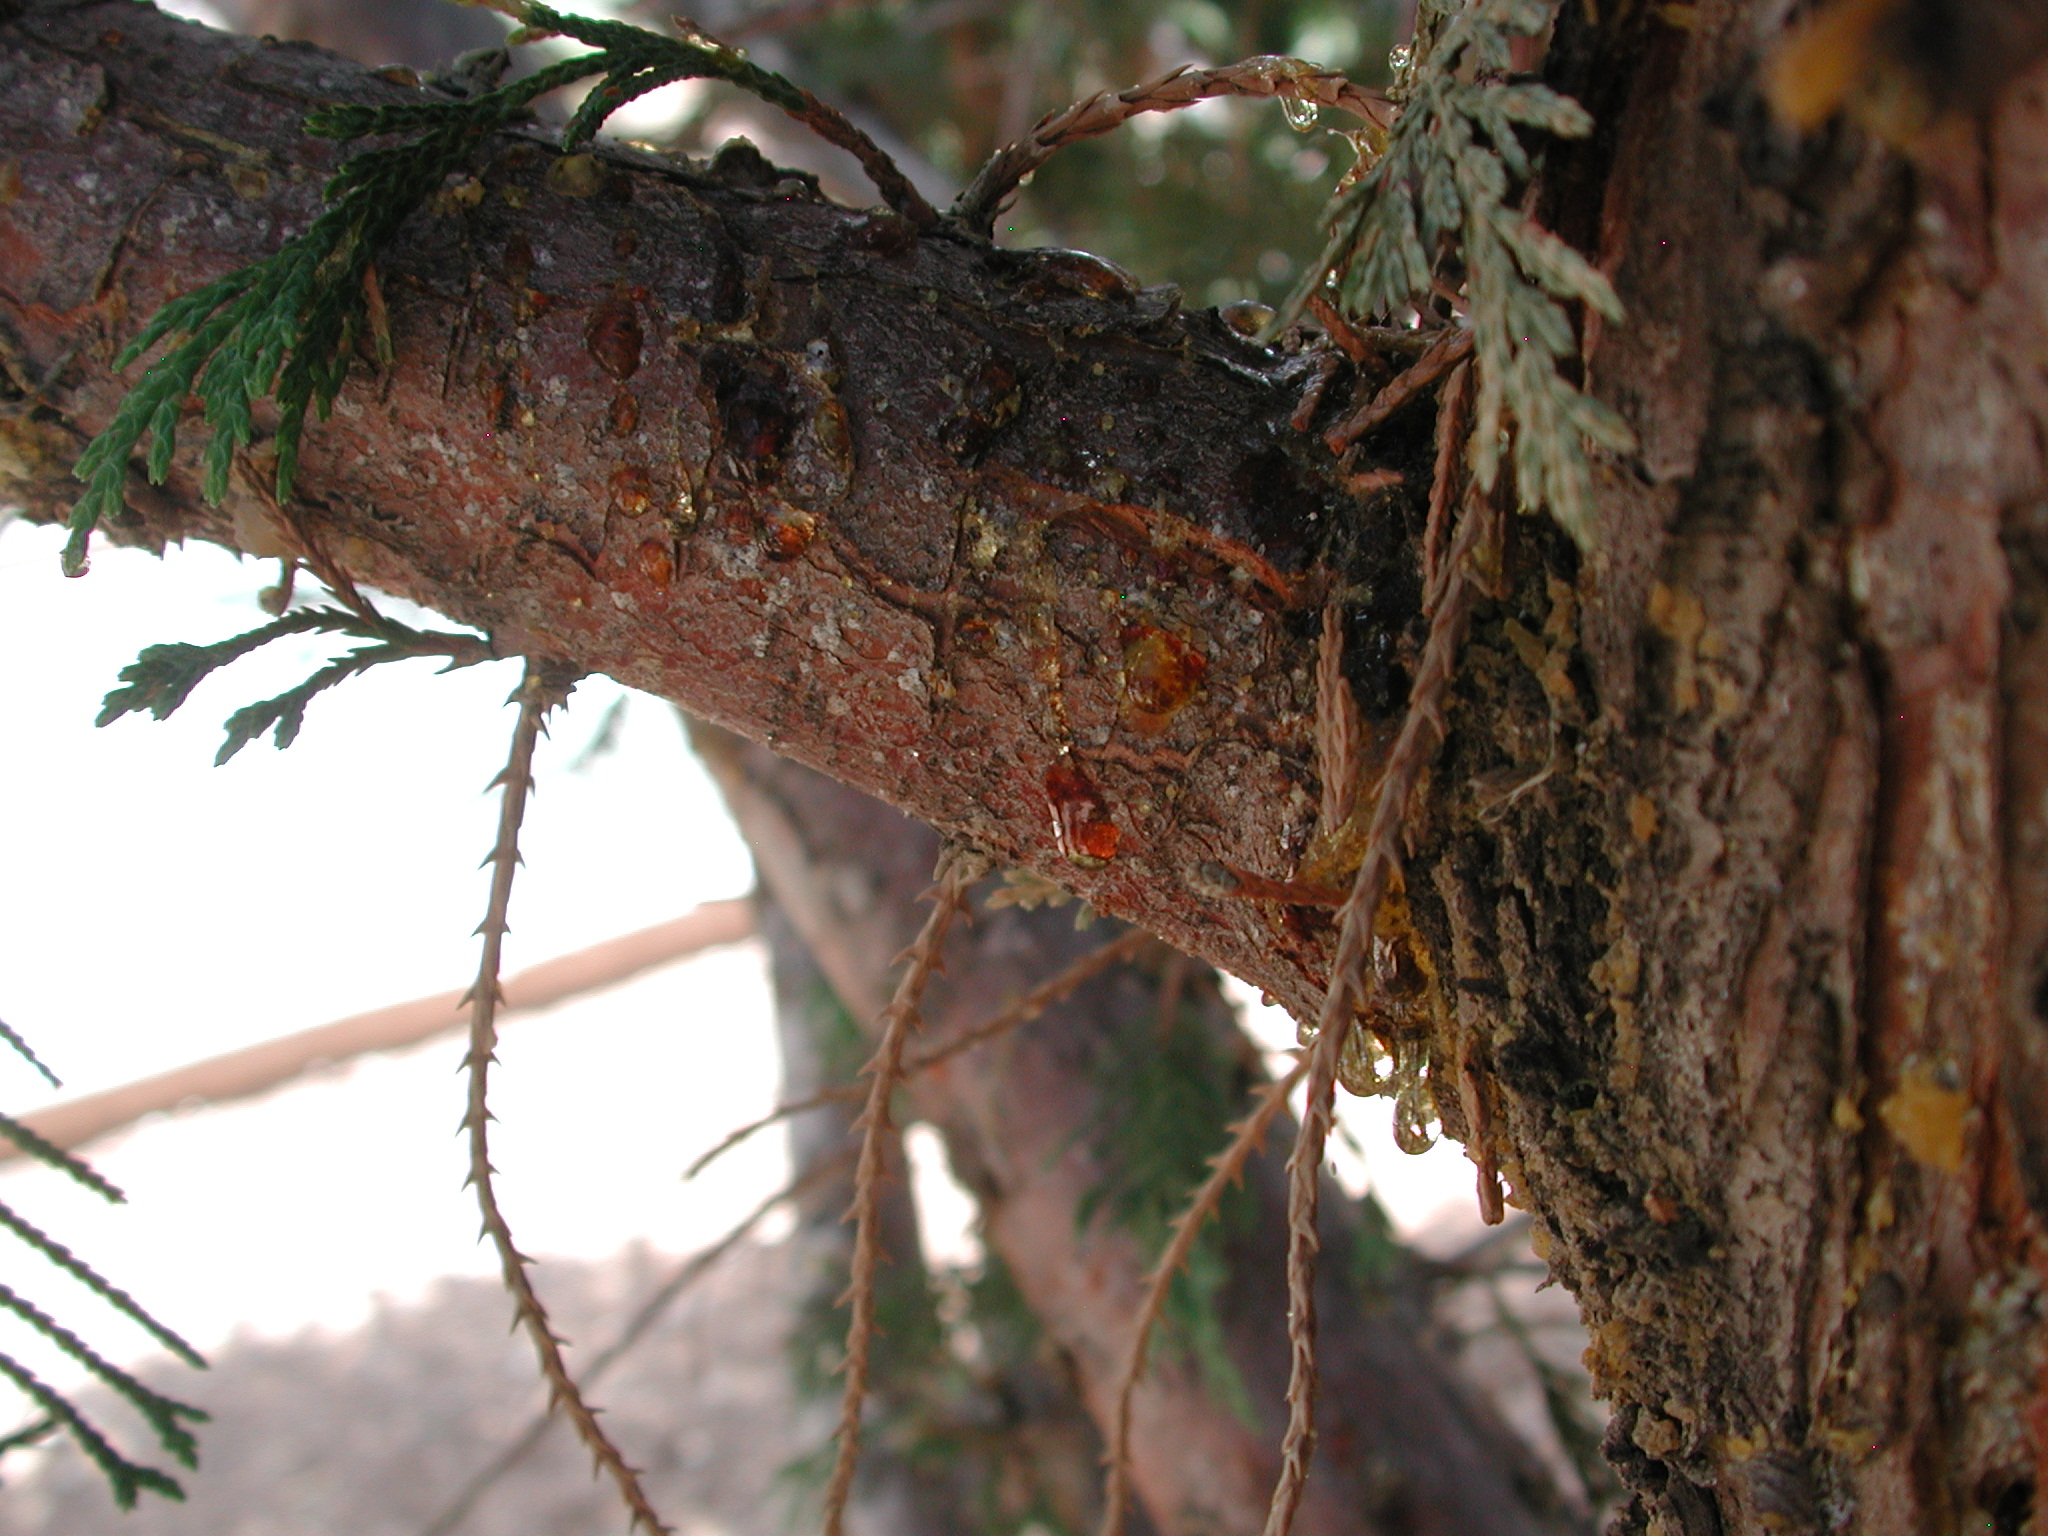 These Cankers Sometimes Exude Resin